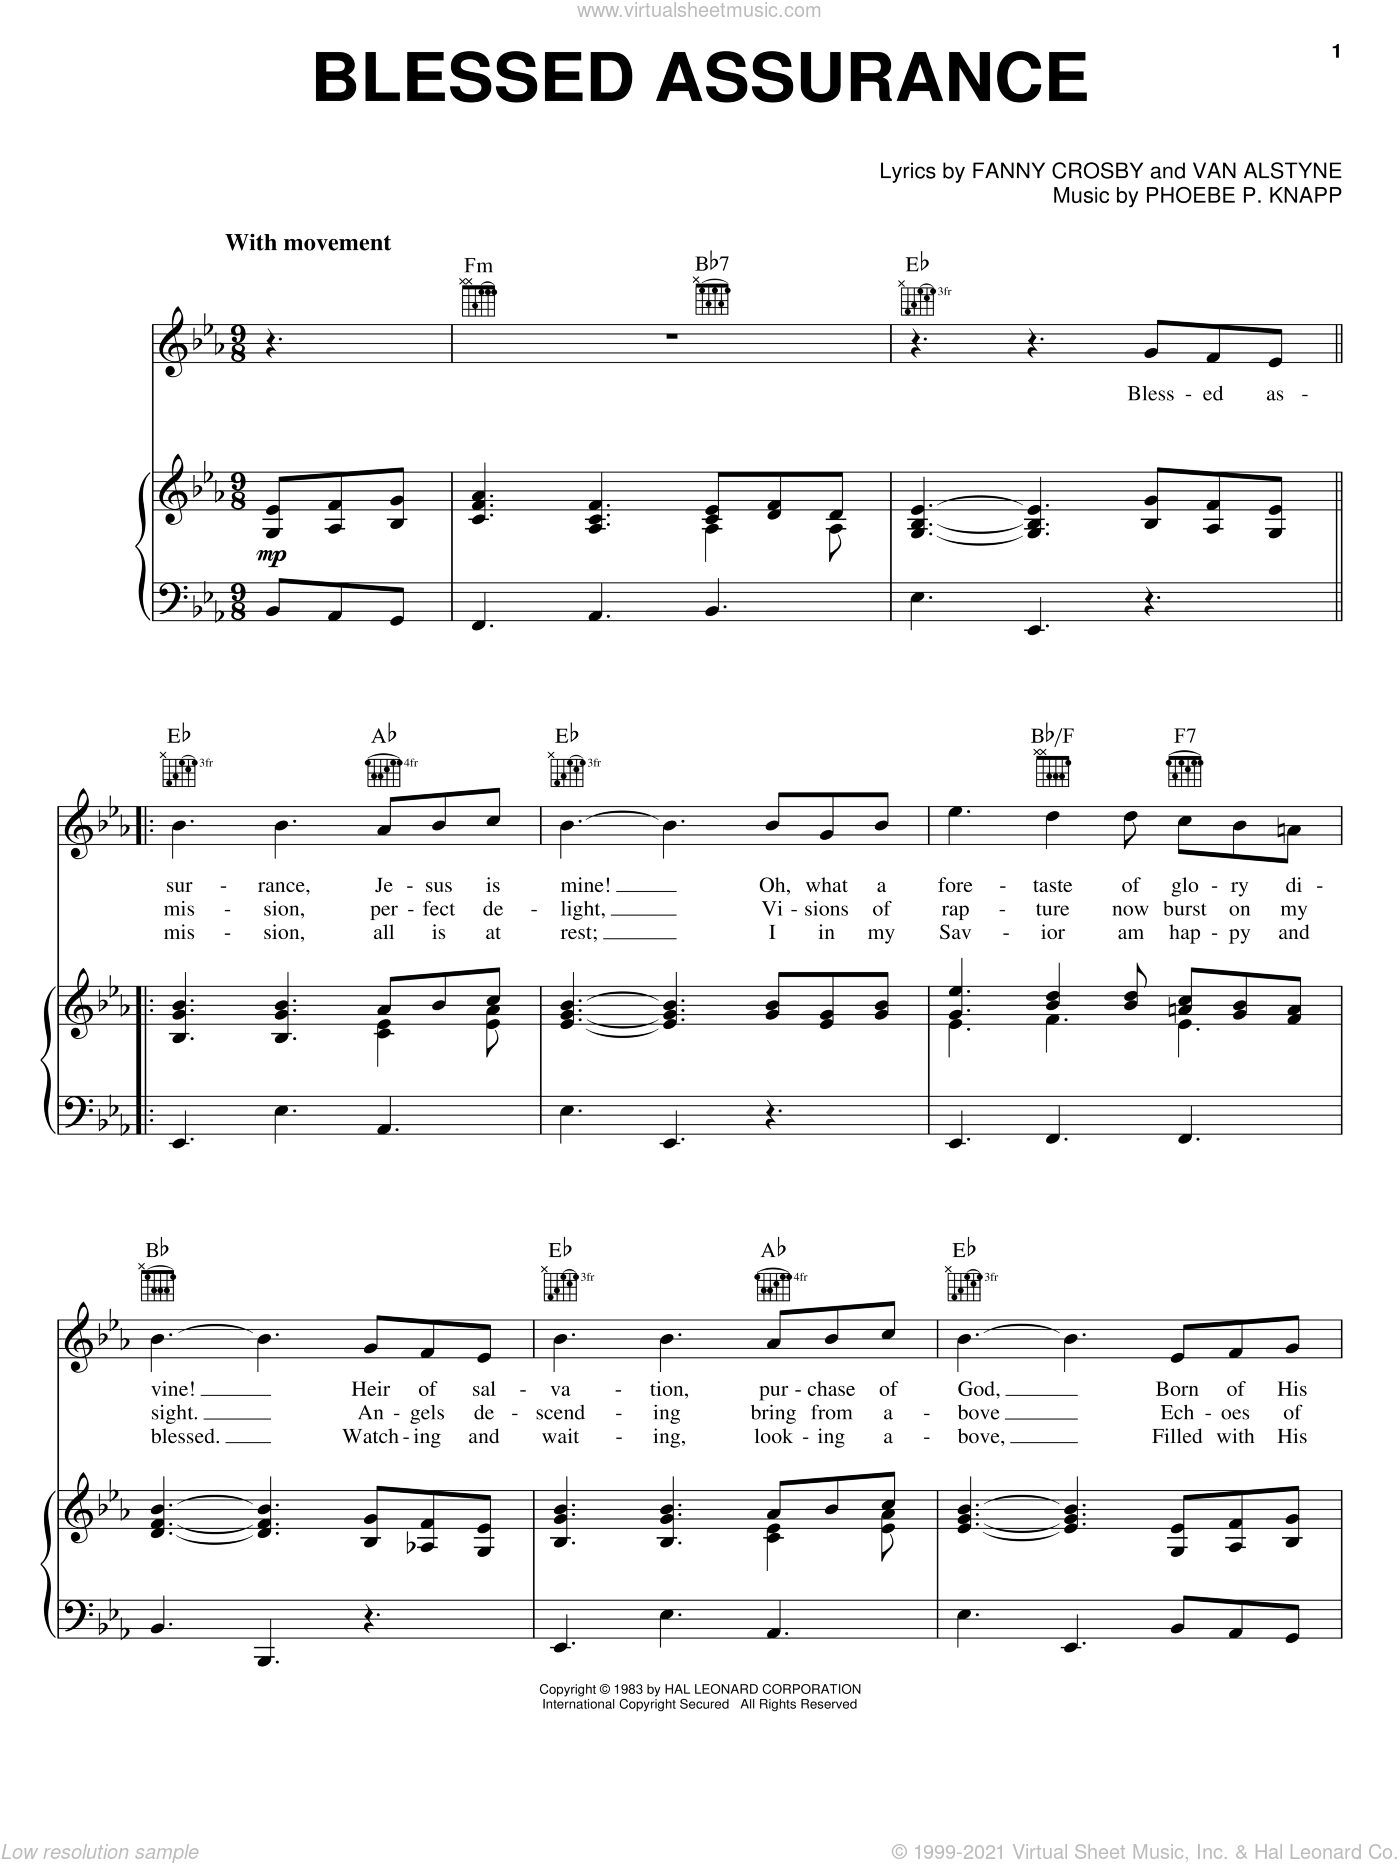 Blessed Assurance sheet music for voice, piano or guitar by Phoebe Palmer Knapp